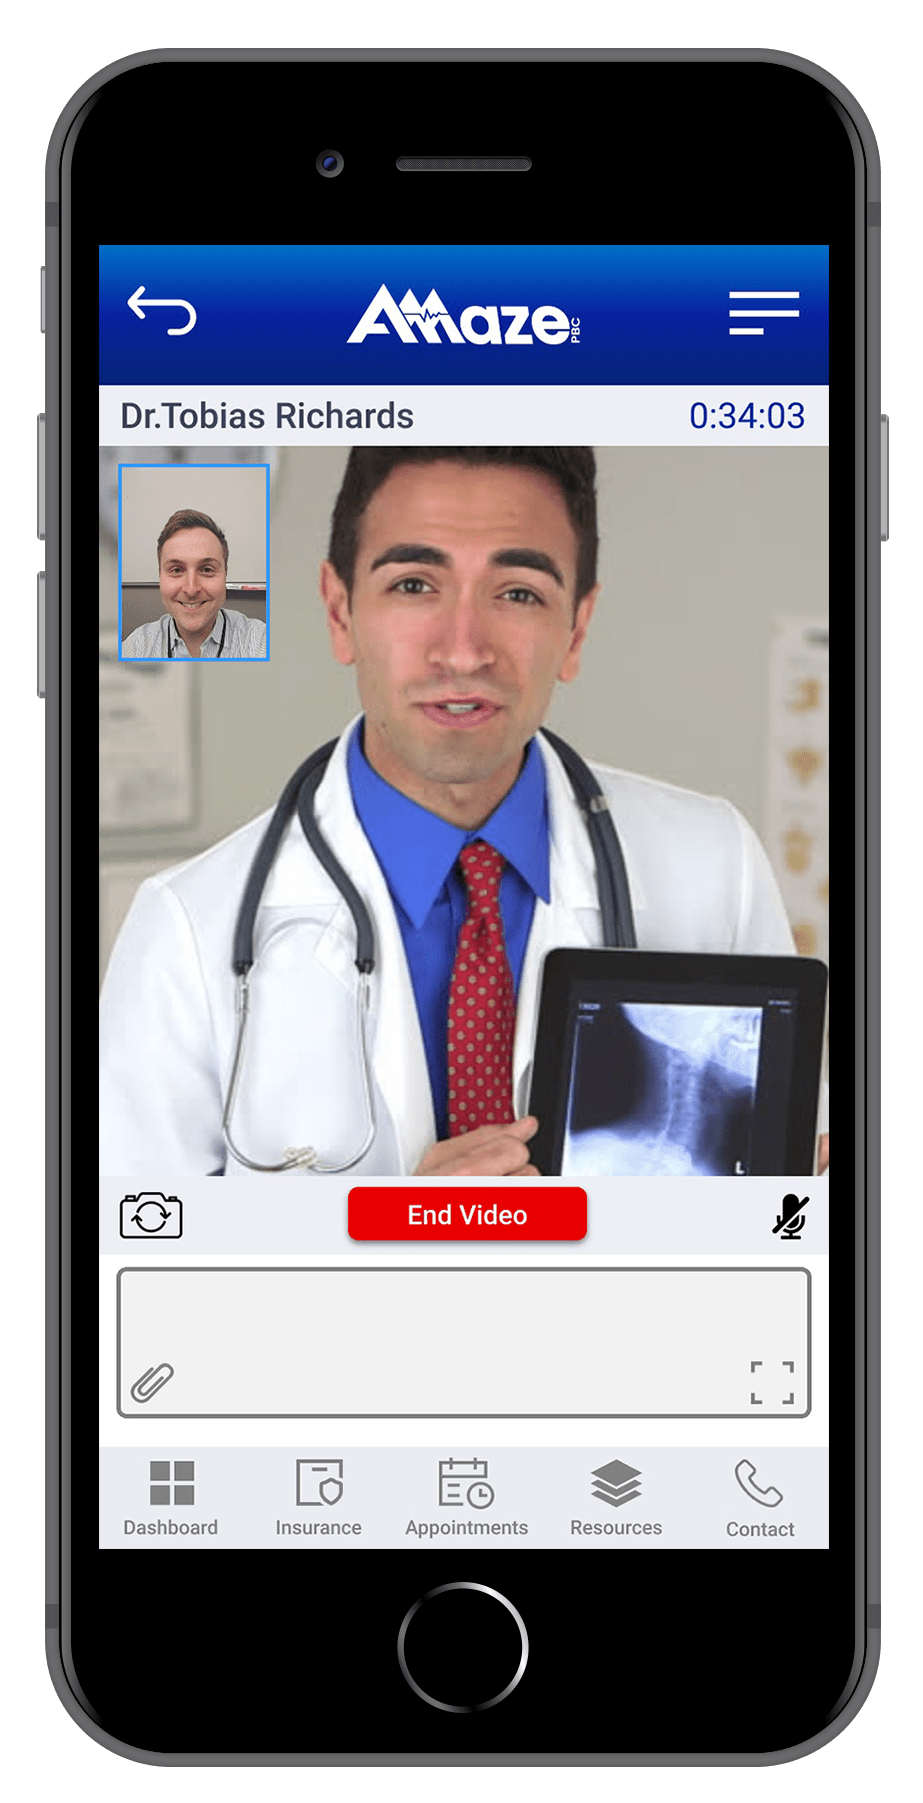 Patient receiving help from a healthcare provider via telemedicine